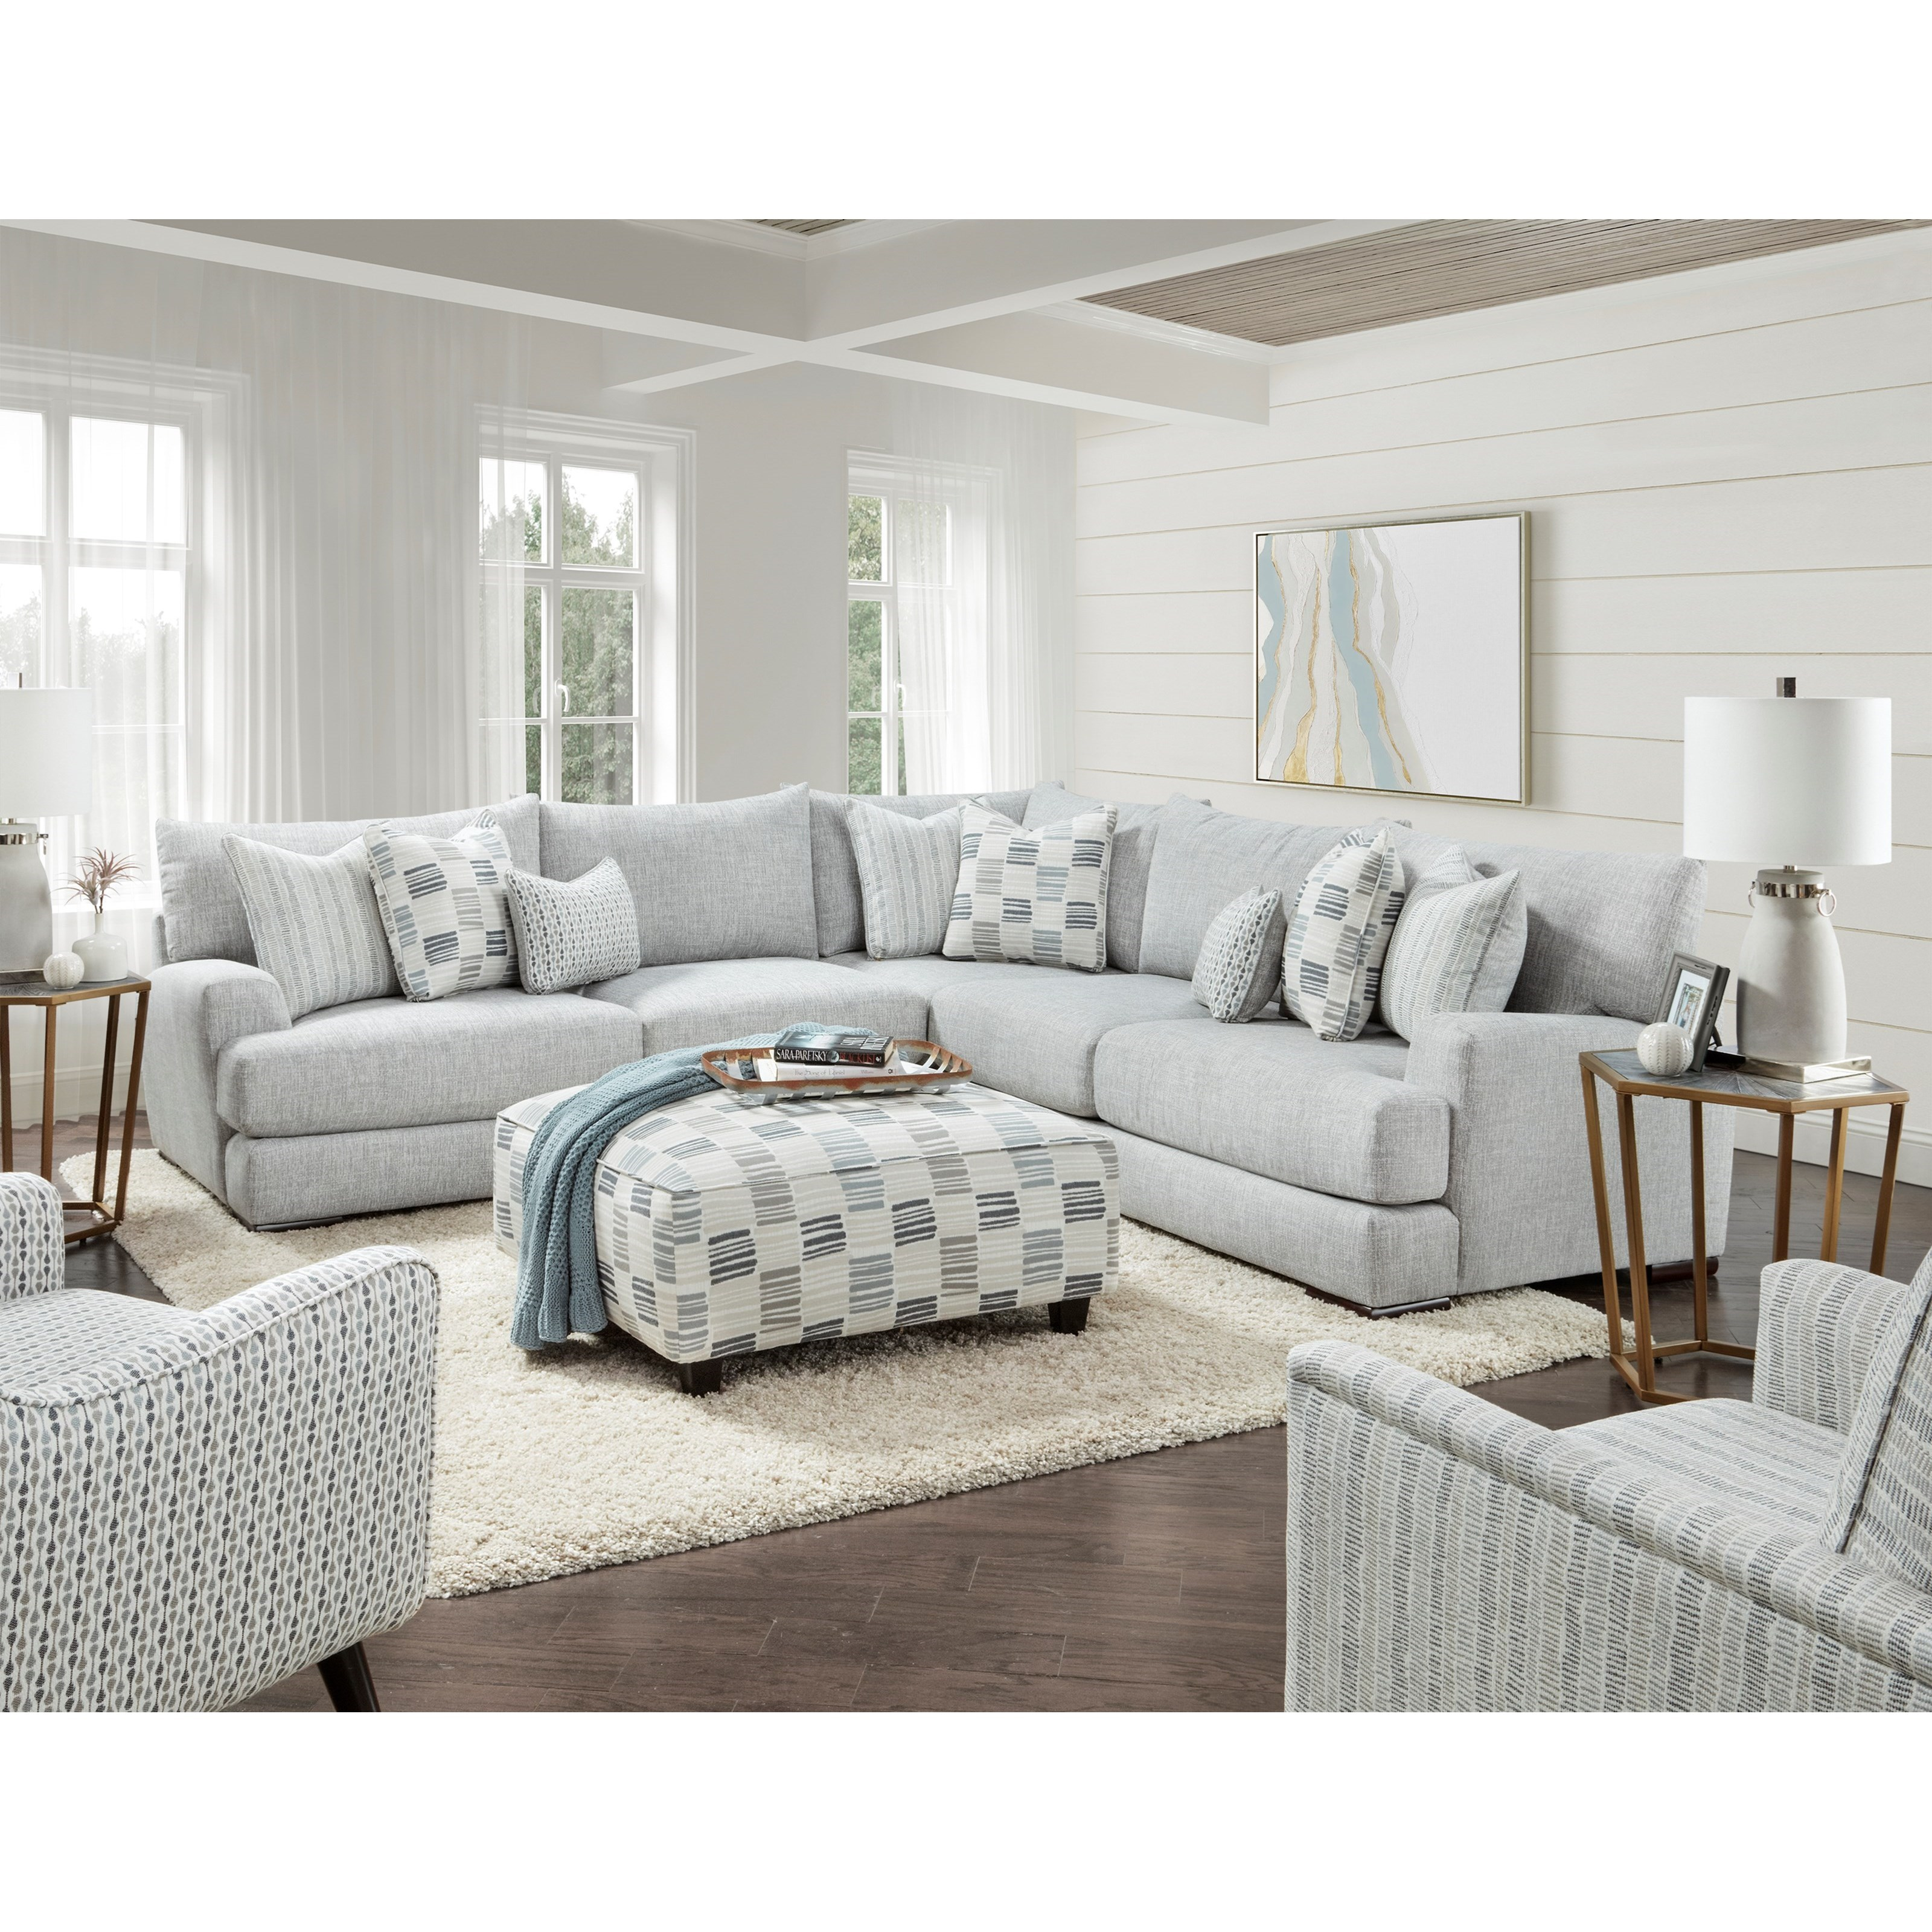 51-00 Living Room Group by Fusion Furniture at Furniture Superstore - Rochester, MN